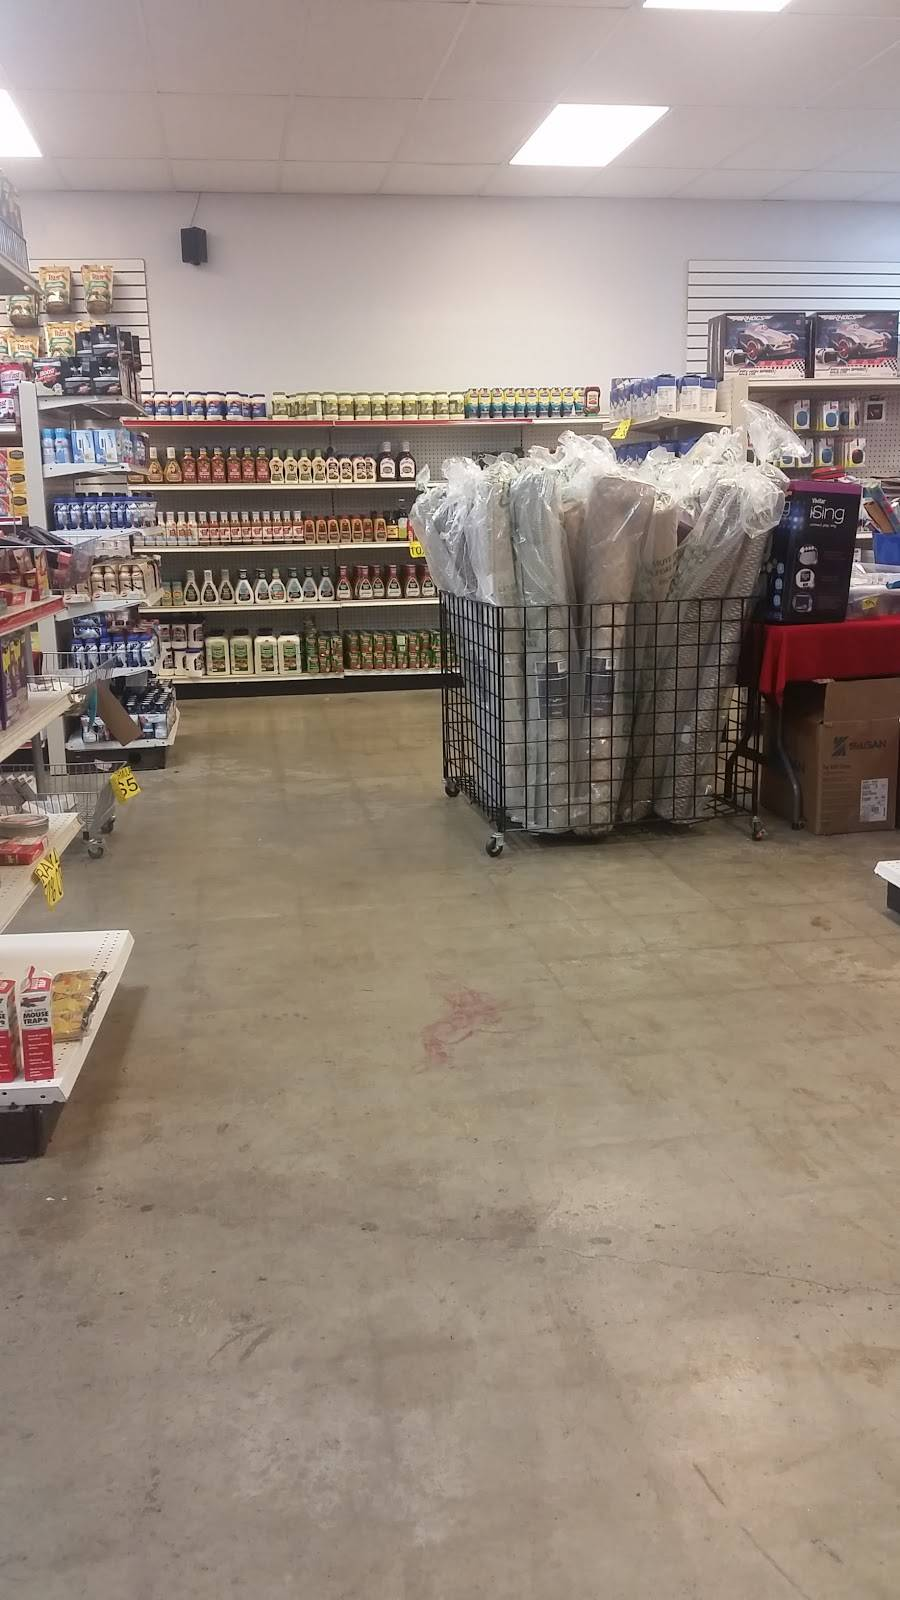 24/30 Surplus - store    Photo 6 of 20   Address: 6346 E State Blvd, Fort Wayne, IN 46815, USA   Phone: (260) 245-6067